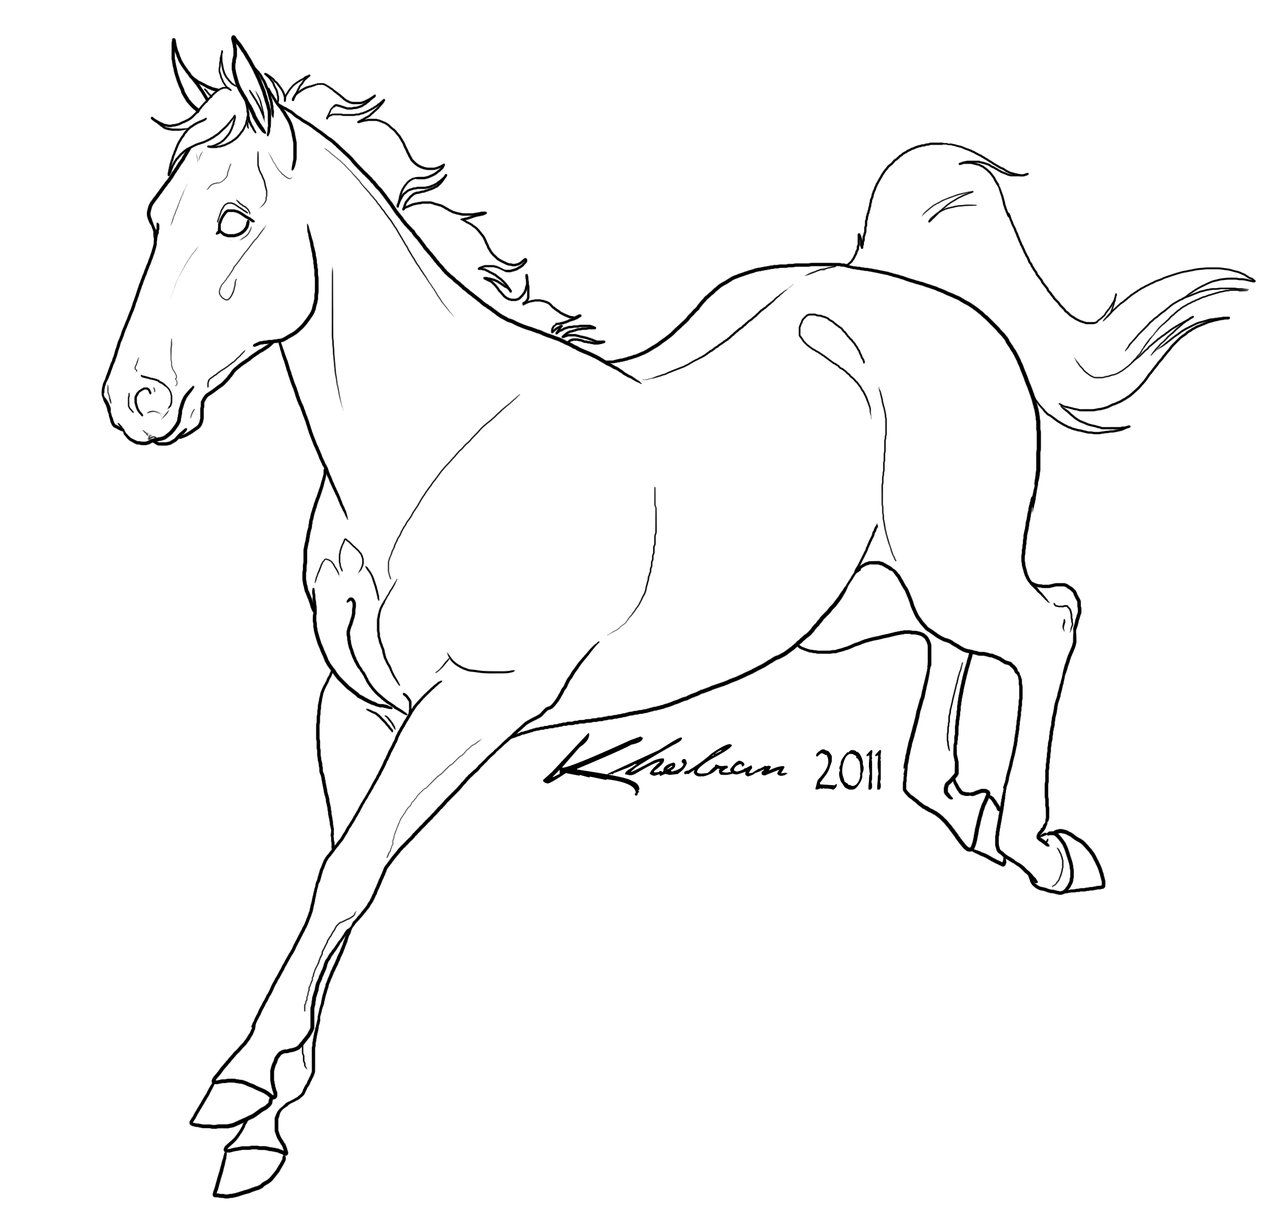 running horse coloring pages sport horse lineart horse drawings horse coloring pages horse coloring running pages